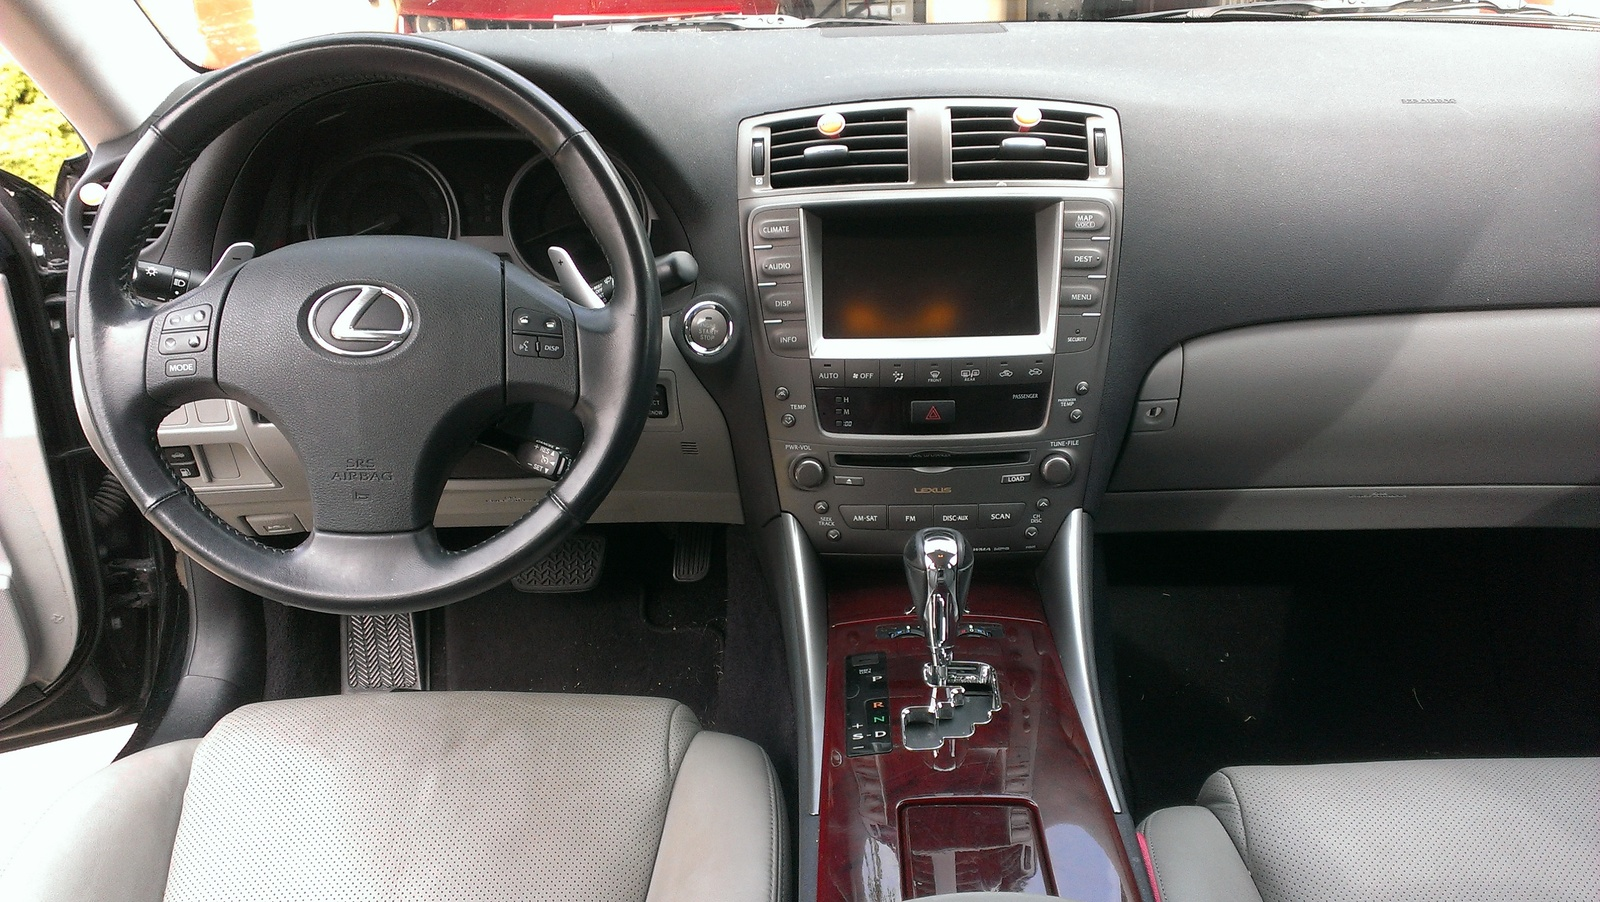 2006 lexus is 250 pictures cargurus. Black Bedroom Furniture Sets. Home Design Ideas